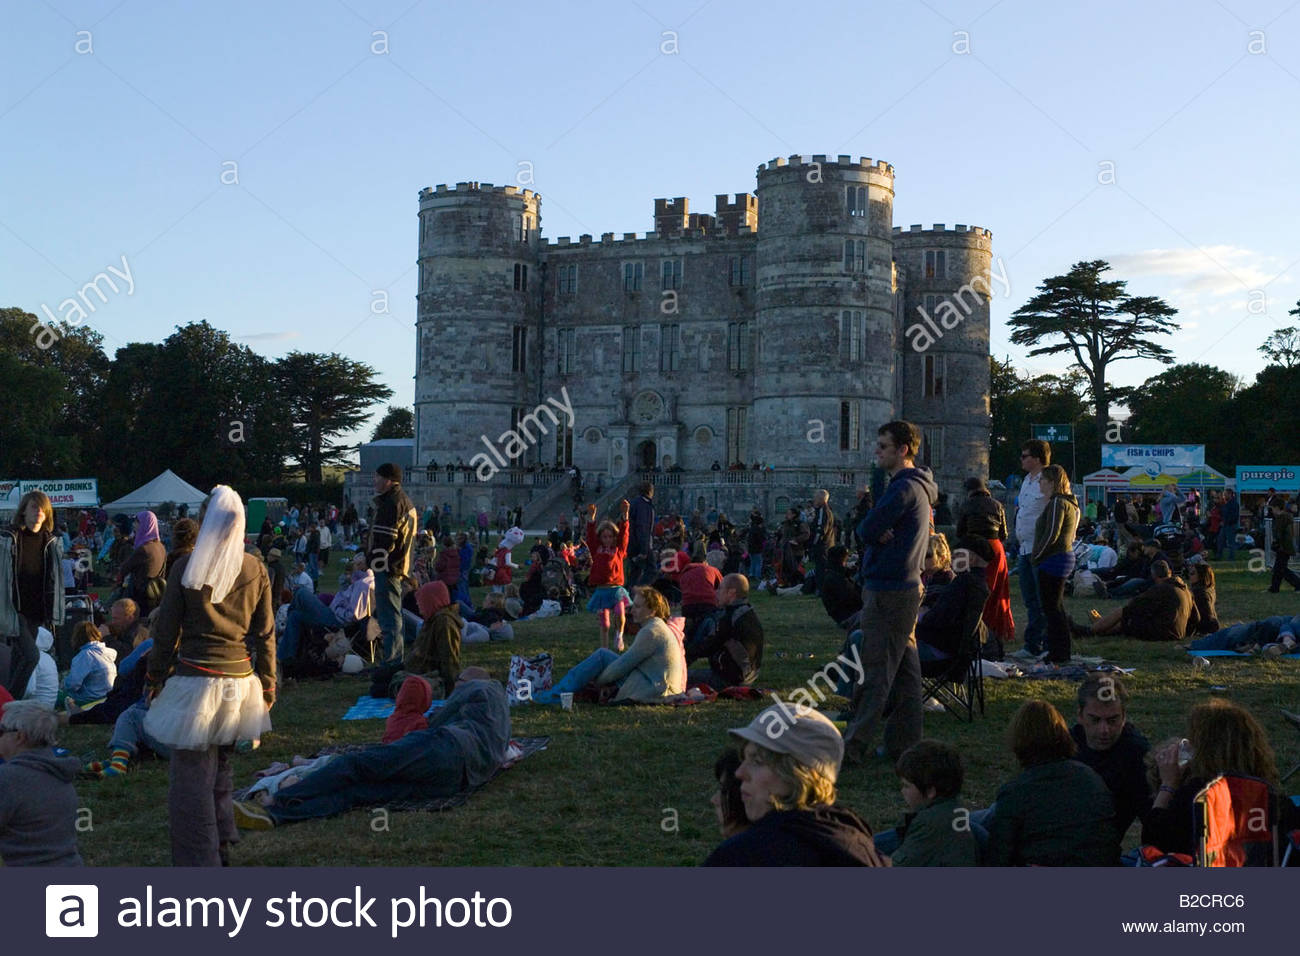 Concert audience and castle at Camp Bestival, Lulworth Castle, Dorset Summer 2008 - Stock Image